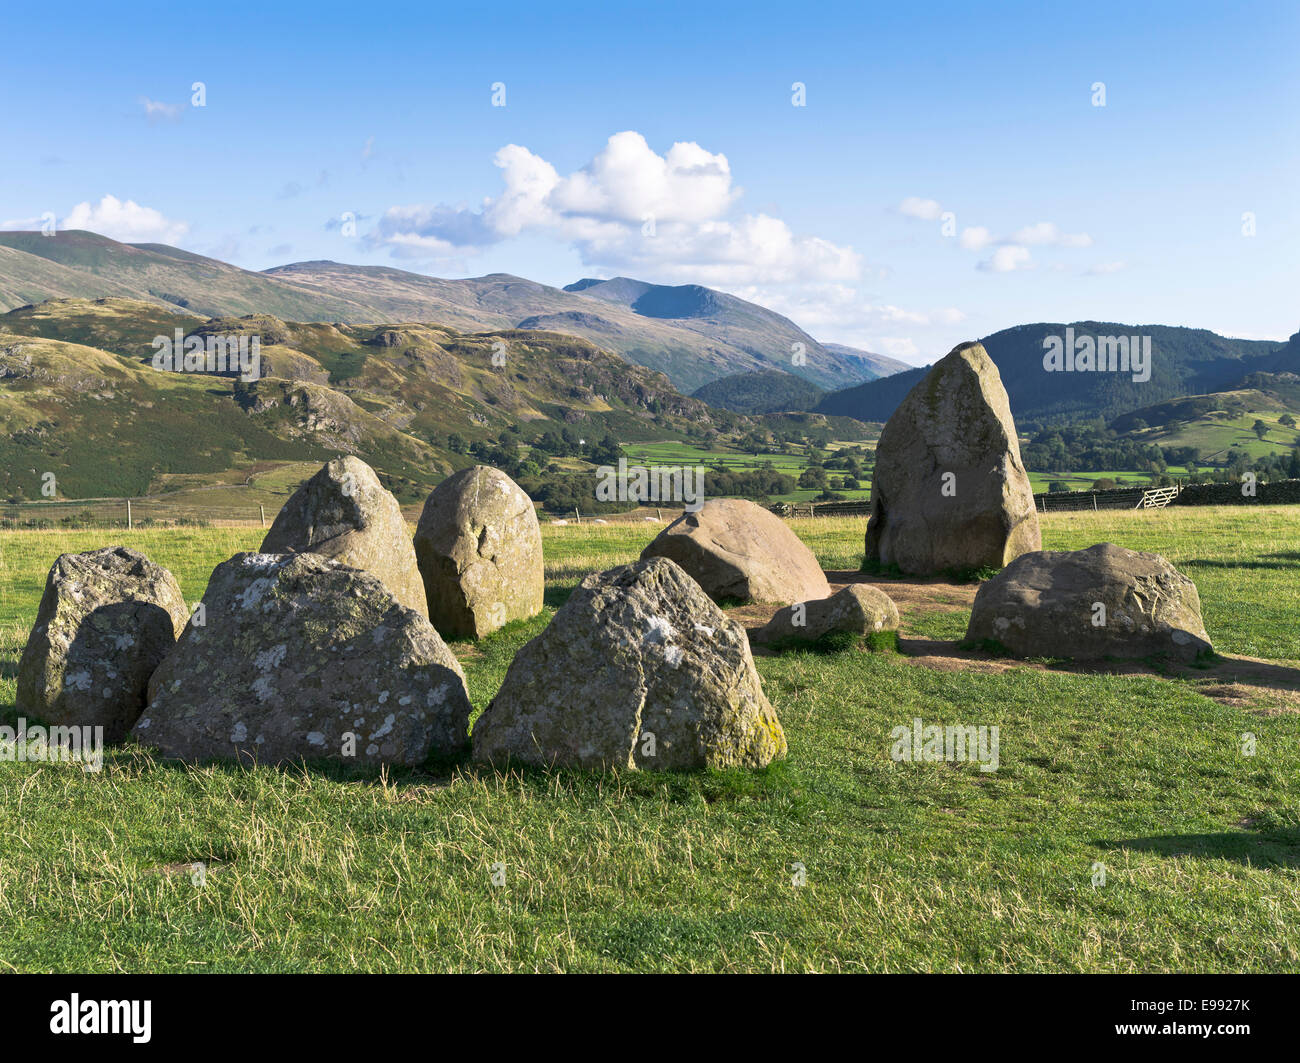 dh Castlerigg Stones KESWICK LAKE DISTRICT Neolithic standing stone site overlooking Cumbria valley stone age sites - Stock Image